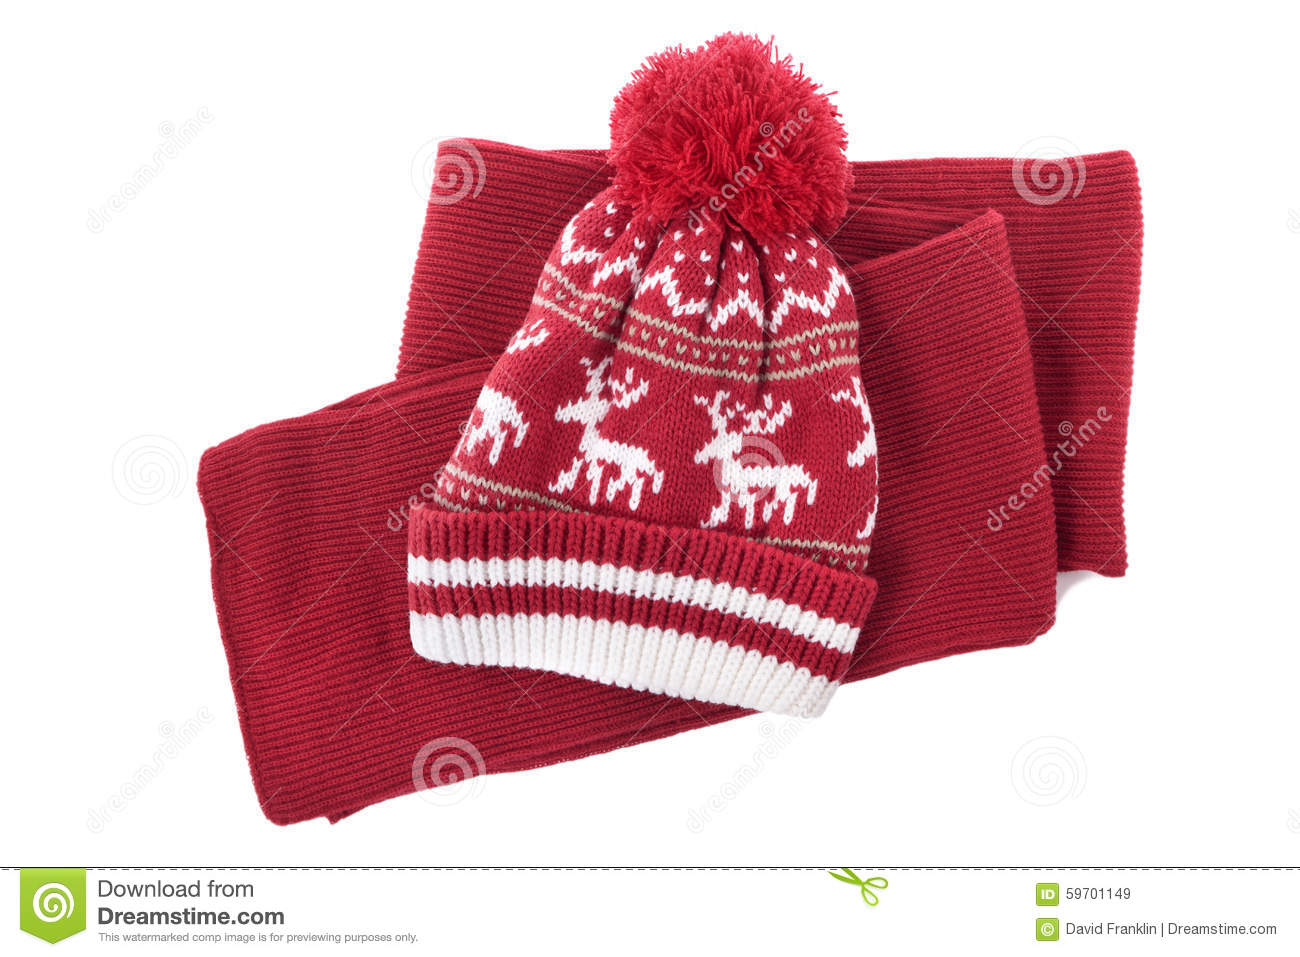 5e49cd7f879 Red knitted scarf and winter bobble hat isolated on a white background